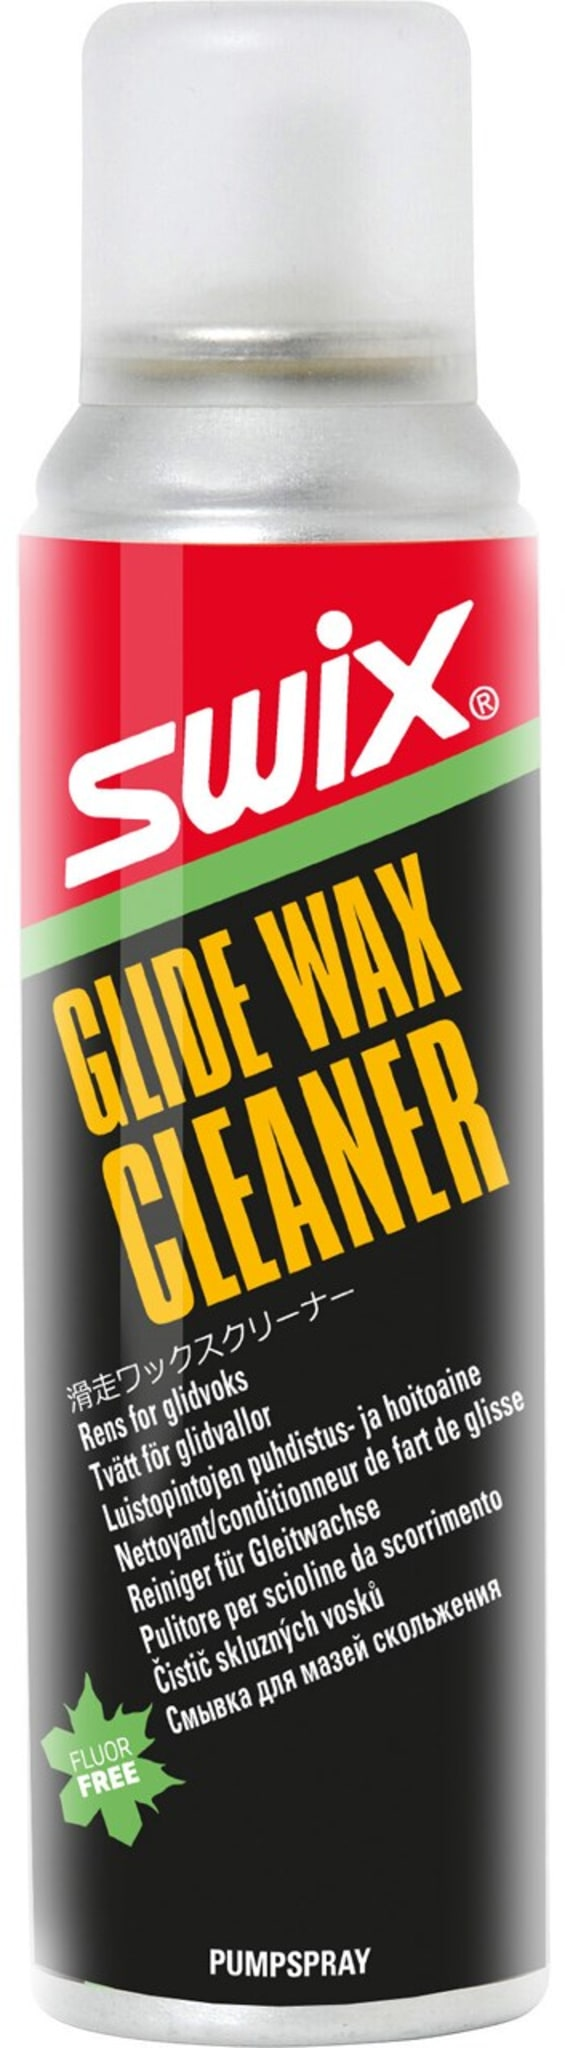 Glide Wax Cleaner. 150ml